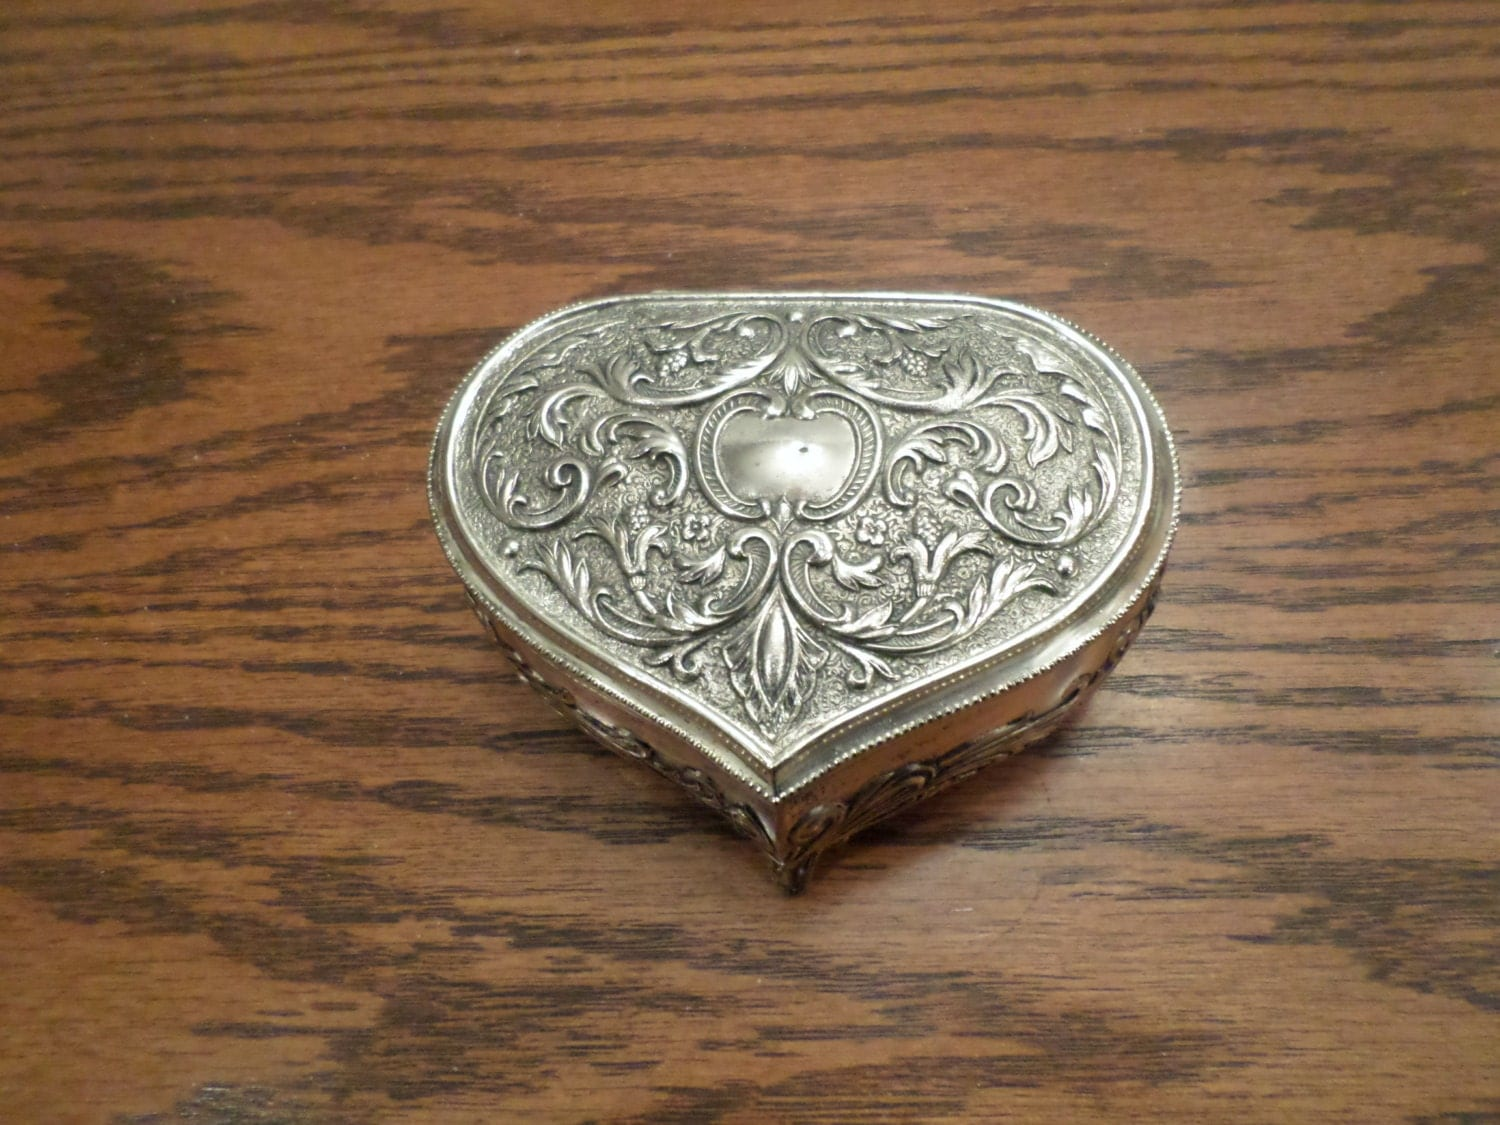 silver plated ornate heart jewelry trinket box. Black Bedroom Furniture Sets. Home Design Ideas